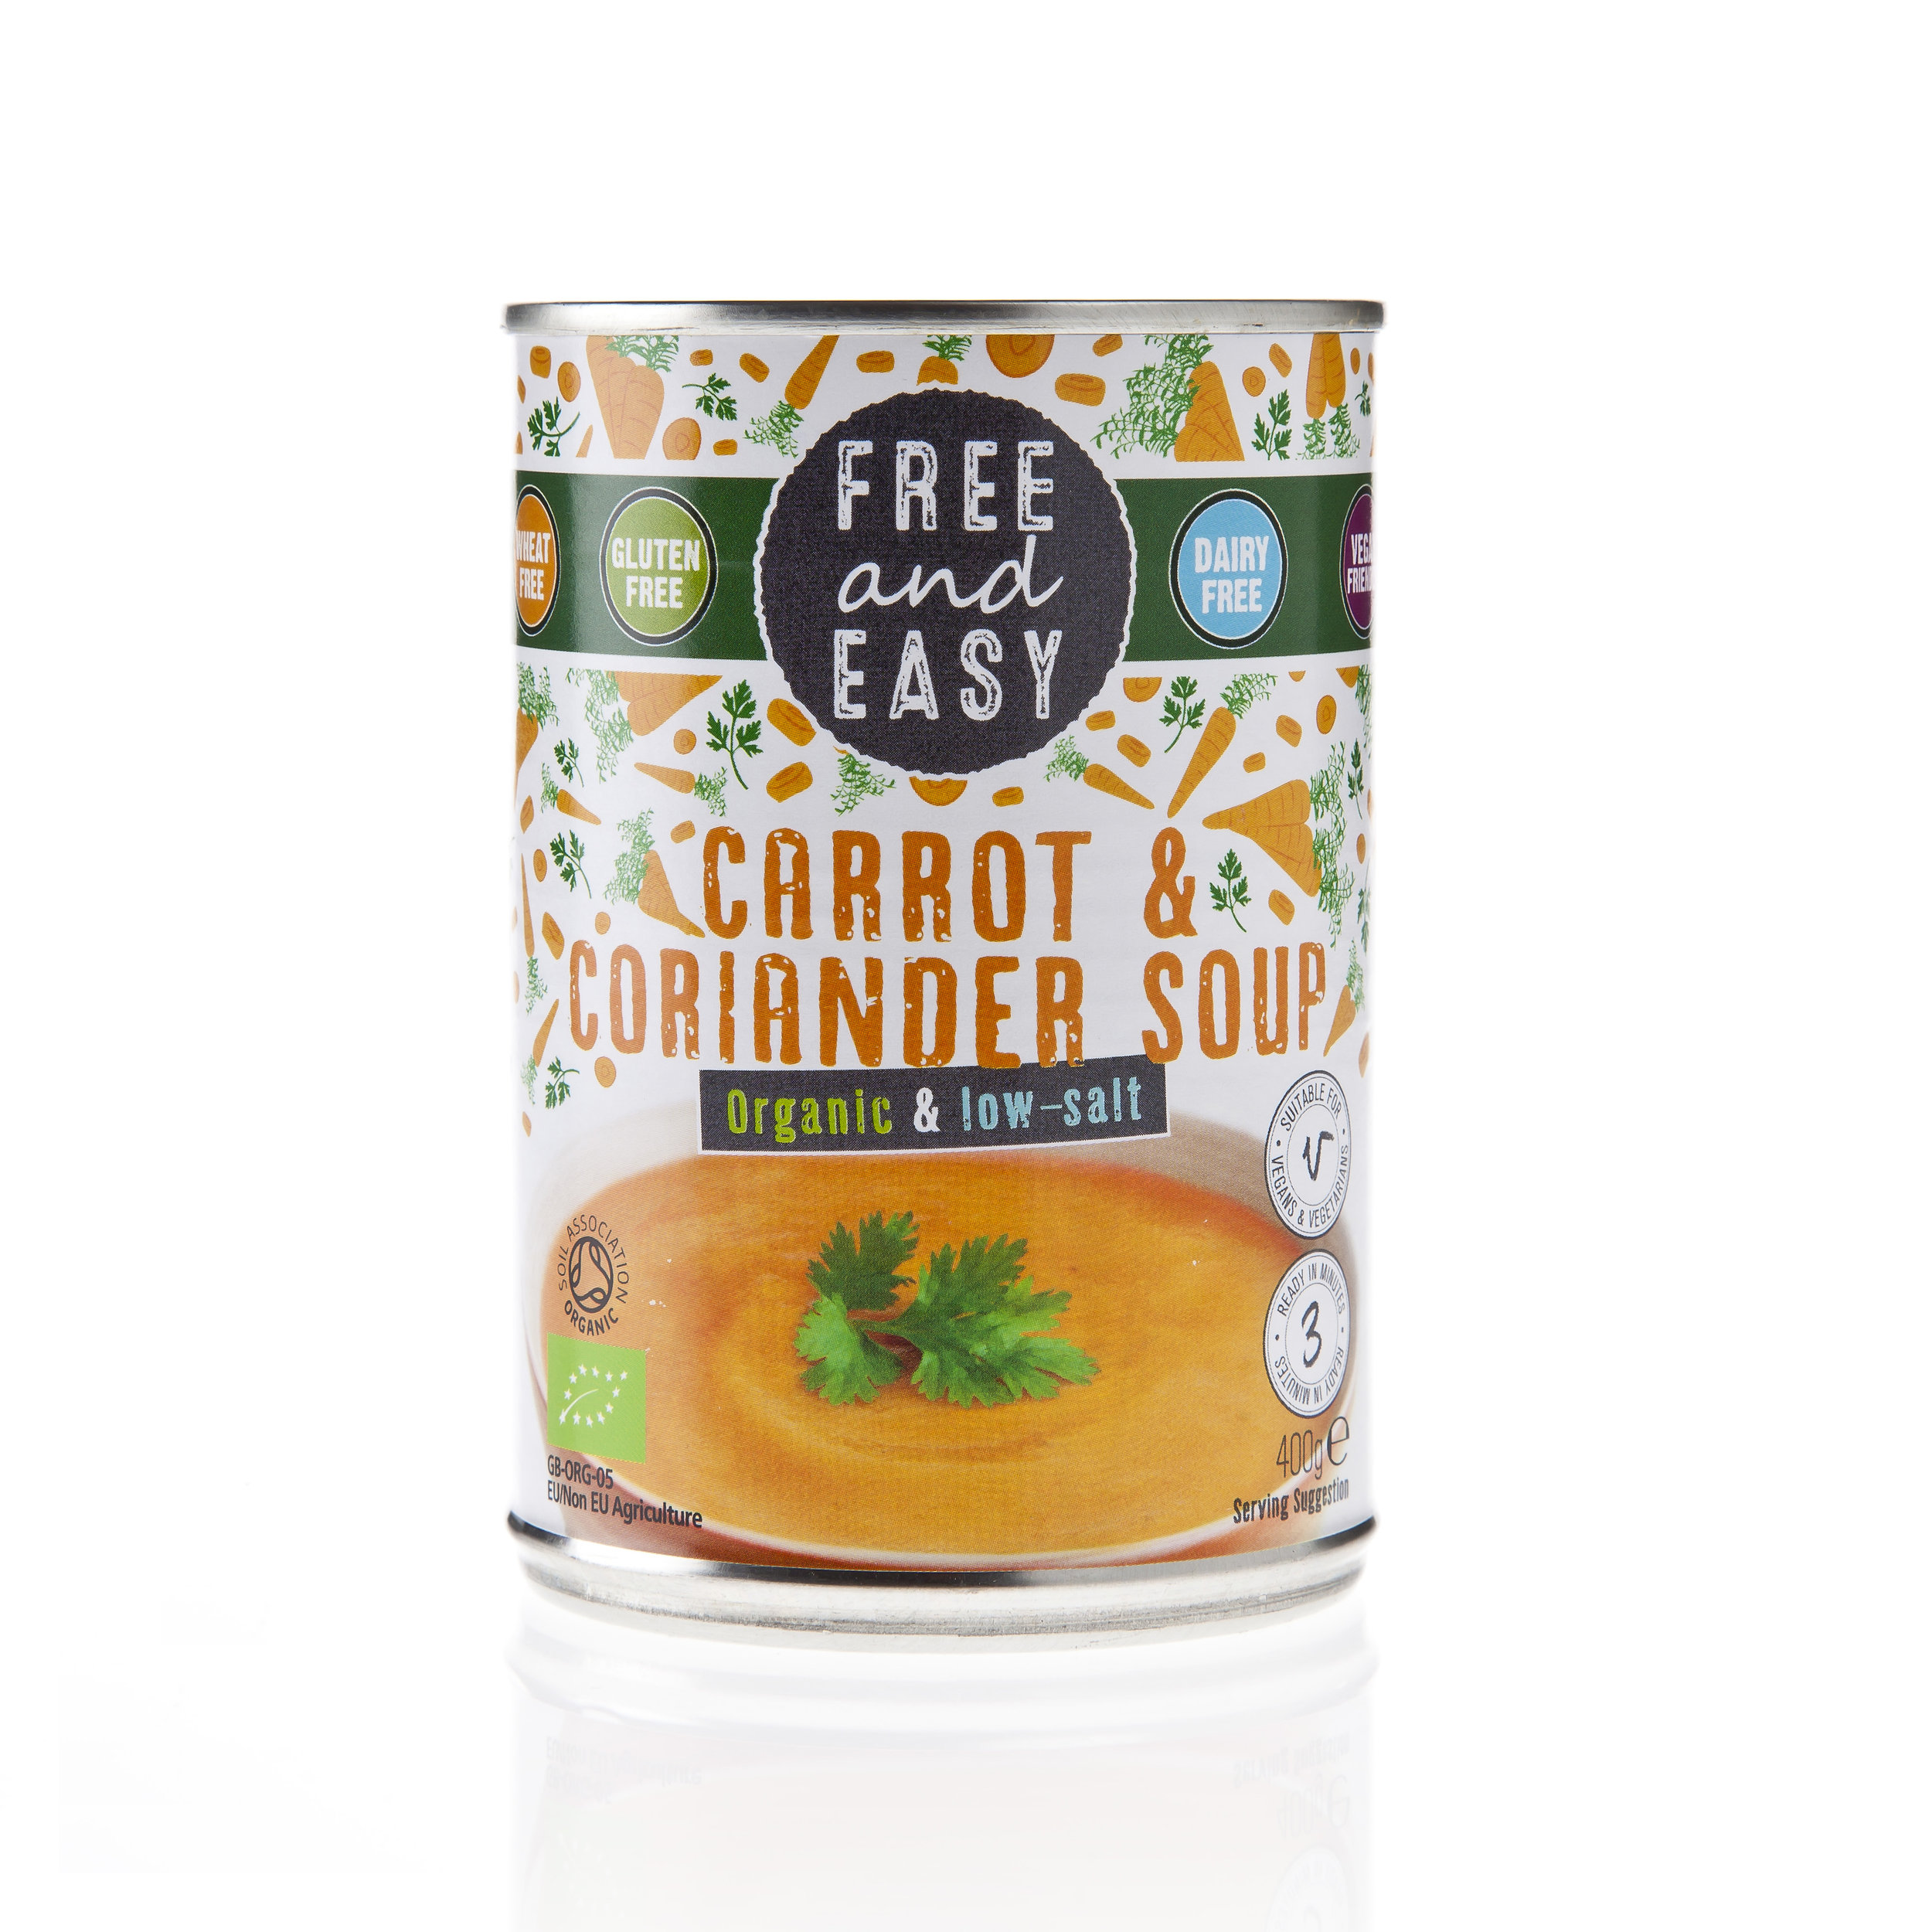 Free and Easy - Carrot & Coriander - Low Salt Soup - Organic low-fat and low salt soup with sweet carrot and fragrant coriander.400g